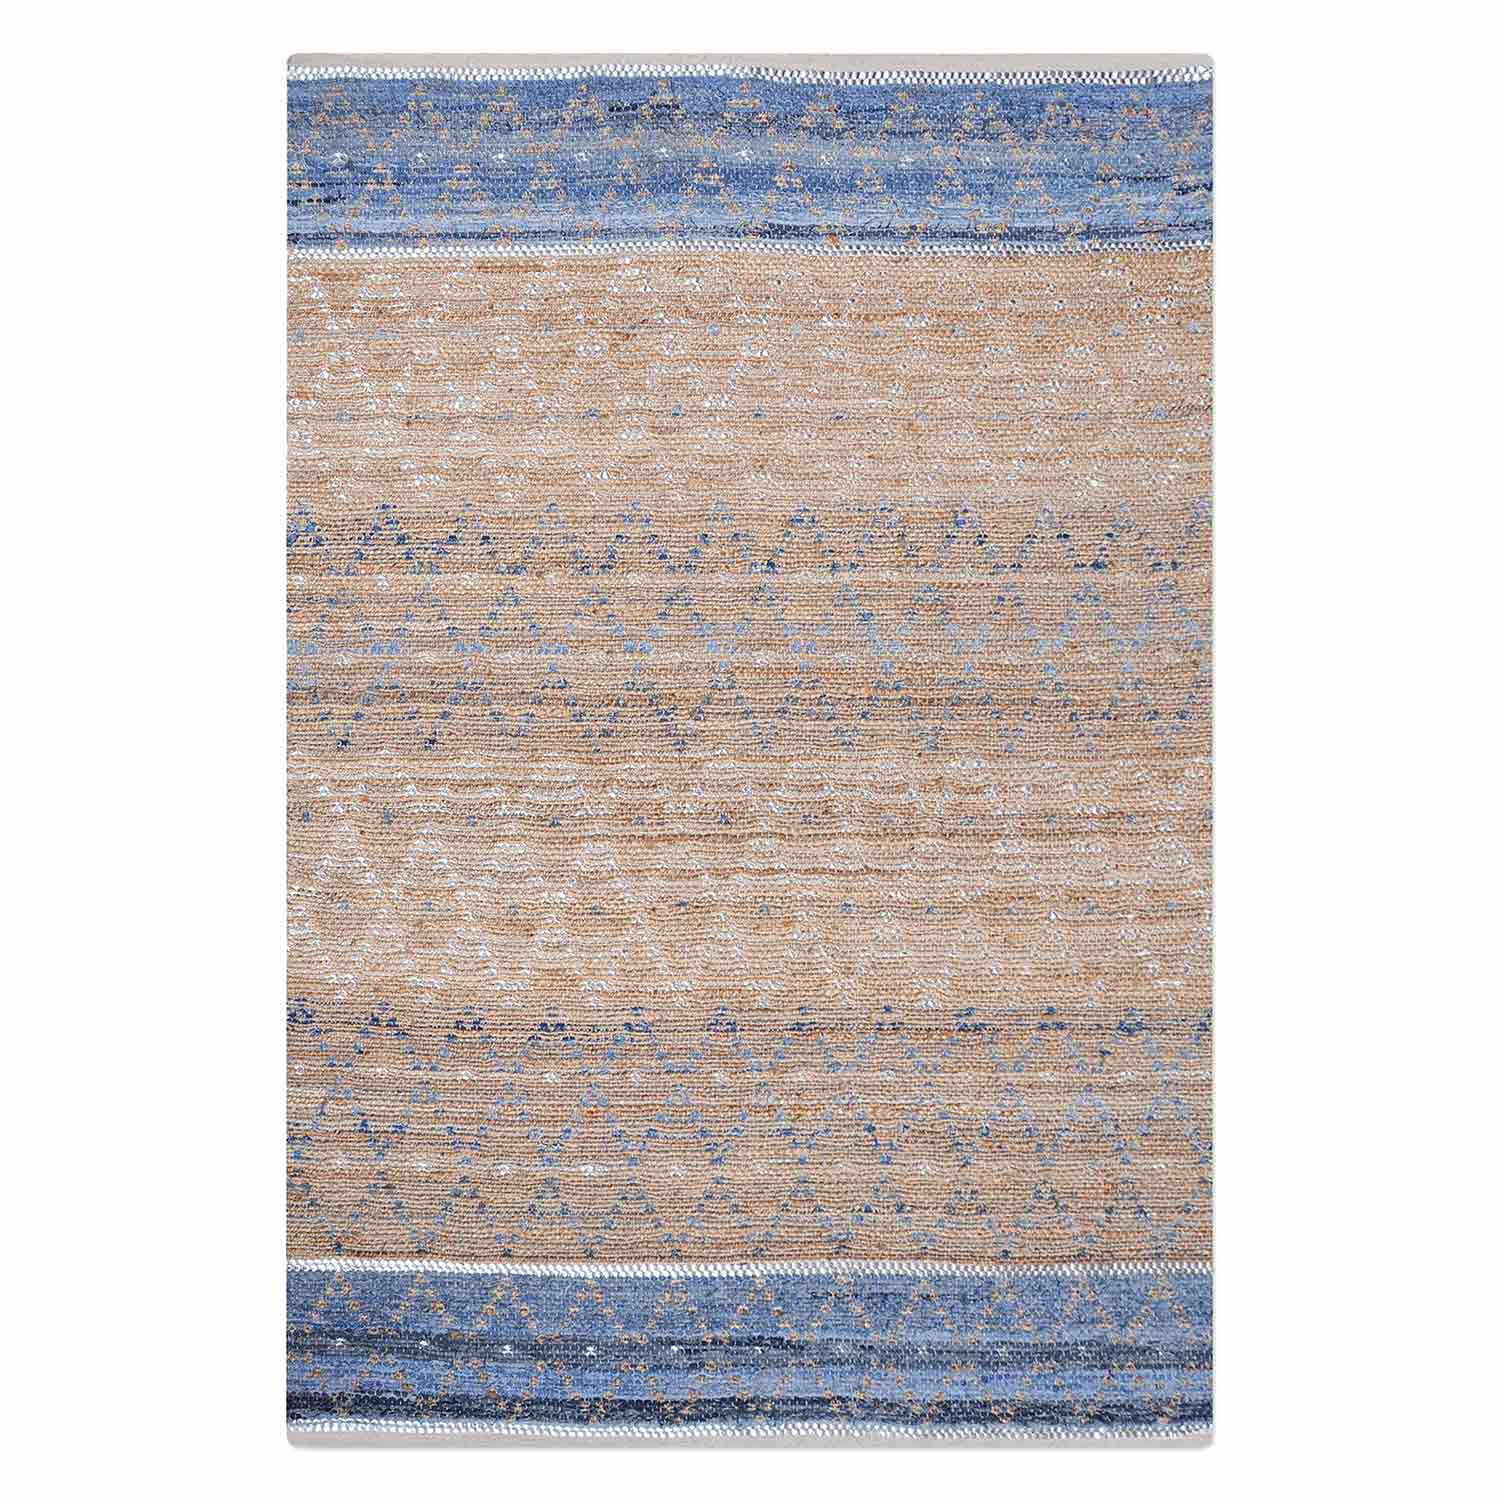 Uttermost Norman 8 x 10 Rug - Blue